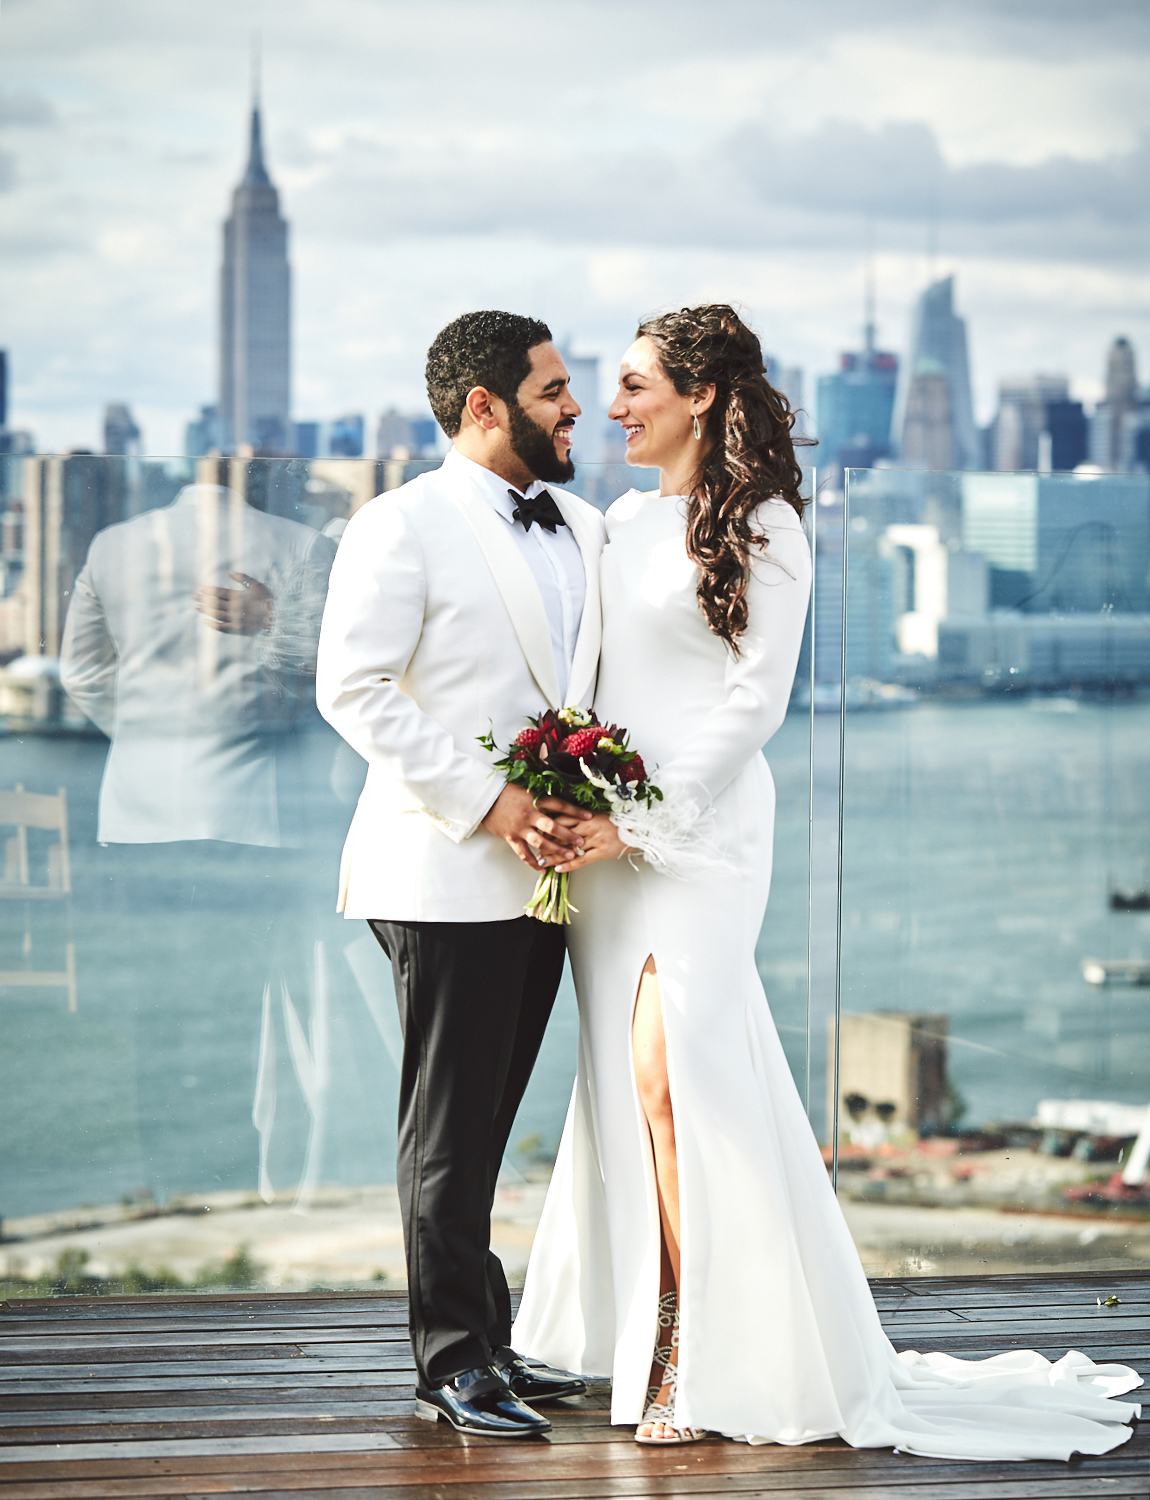 170930_WilliamValeWeddingPhotography_BrooklynWeddingPhotographer_By_BriJohnsonWeddings_0077.jpg